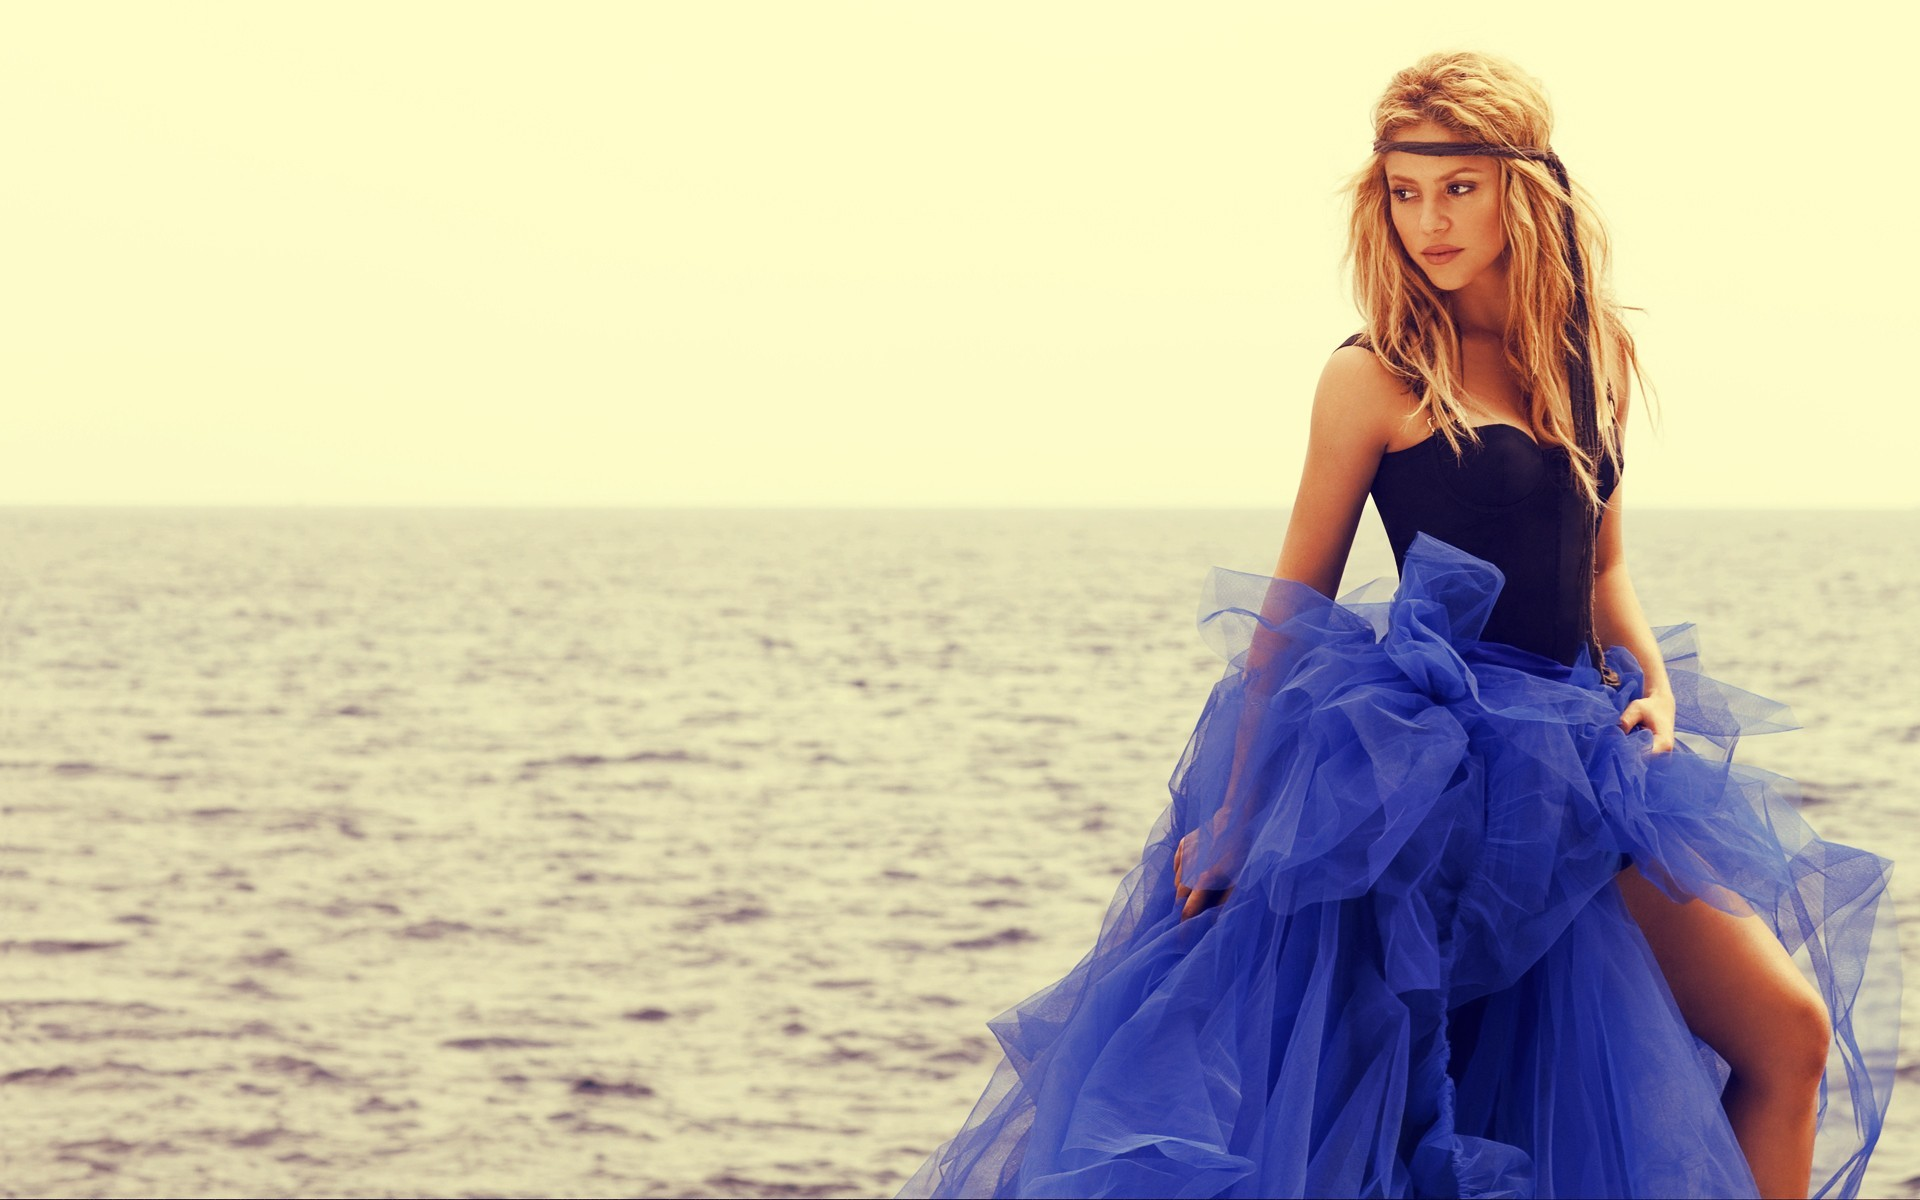 woman blue dress shakira HD Wallpaper